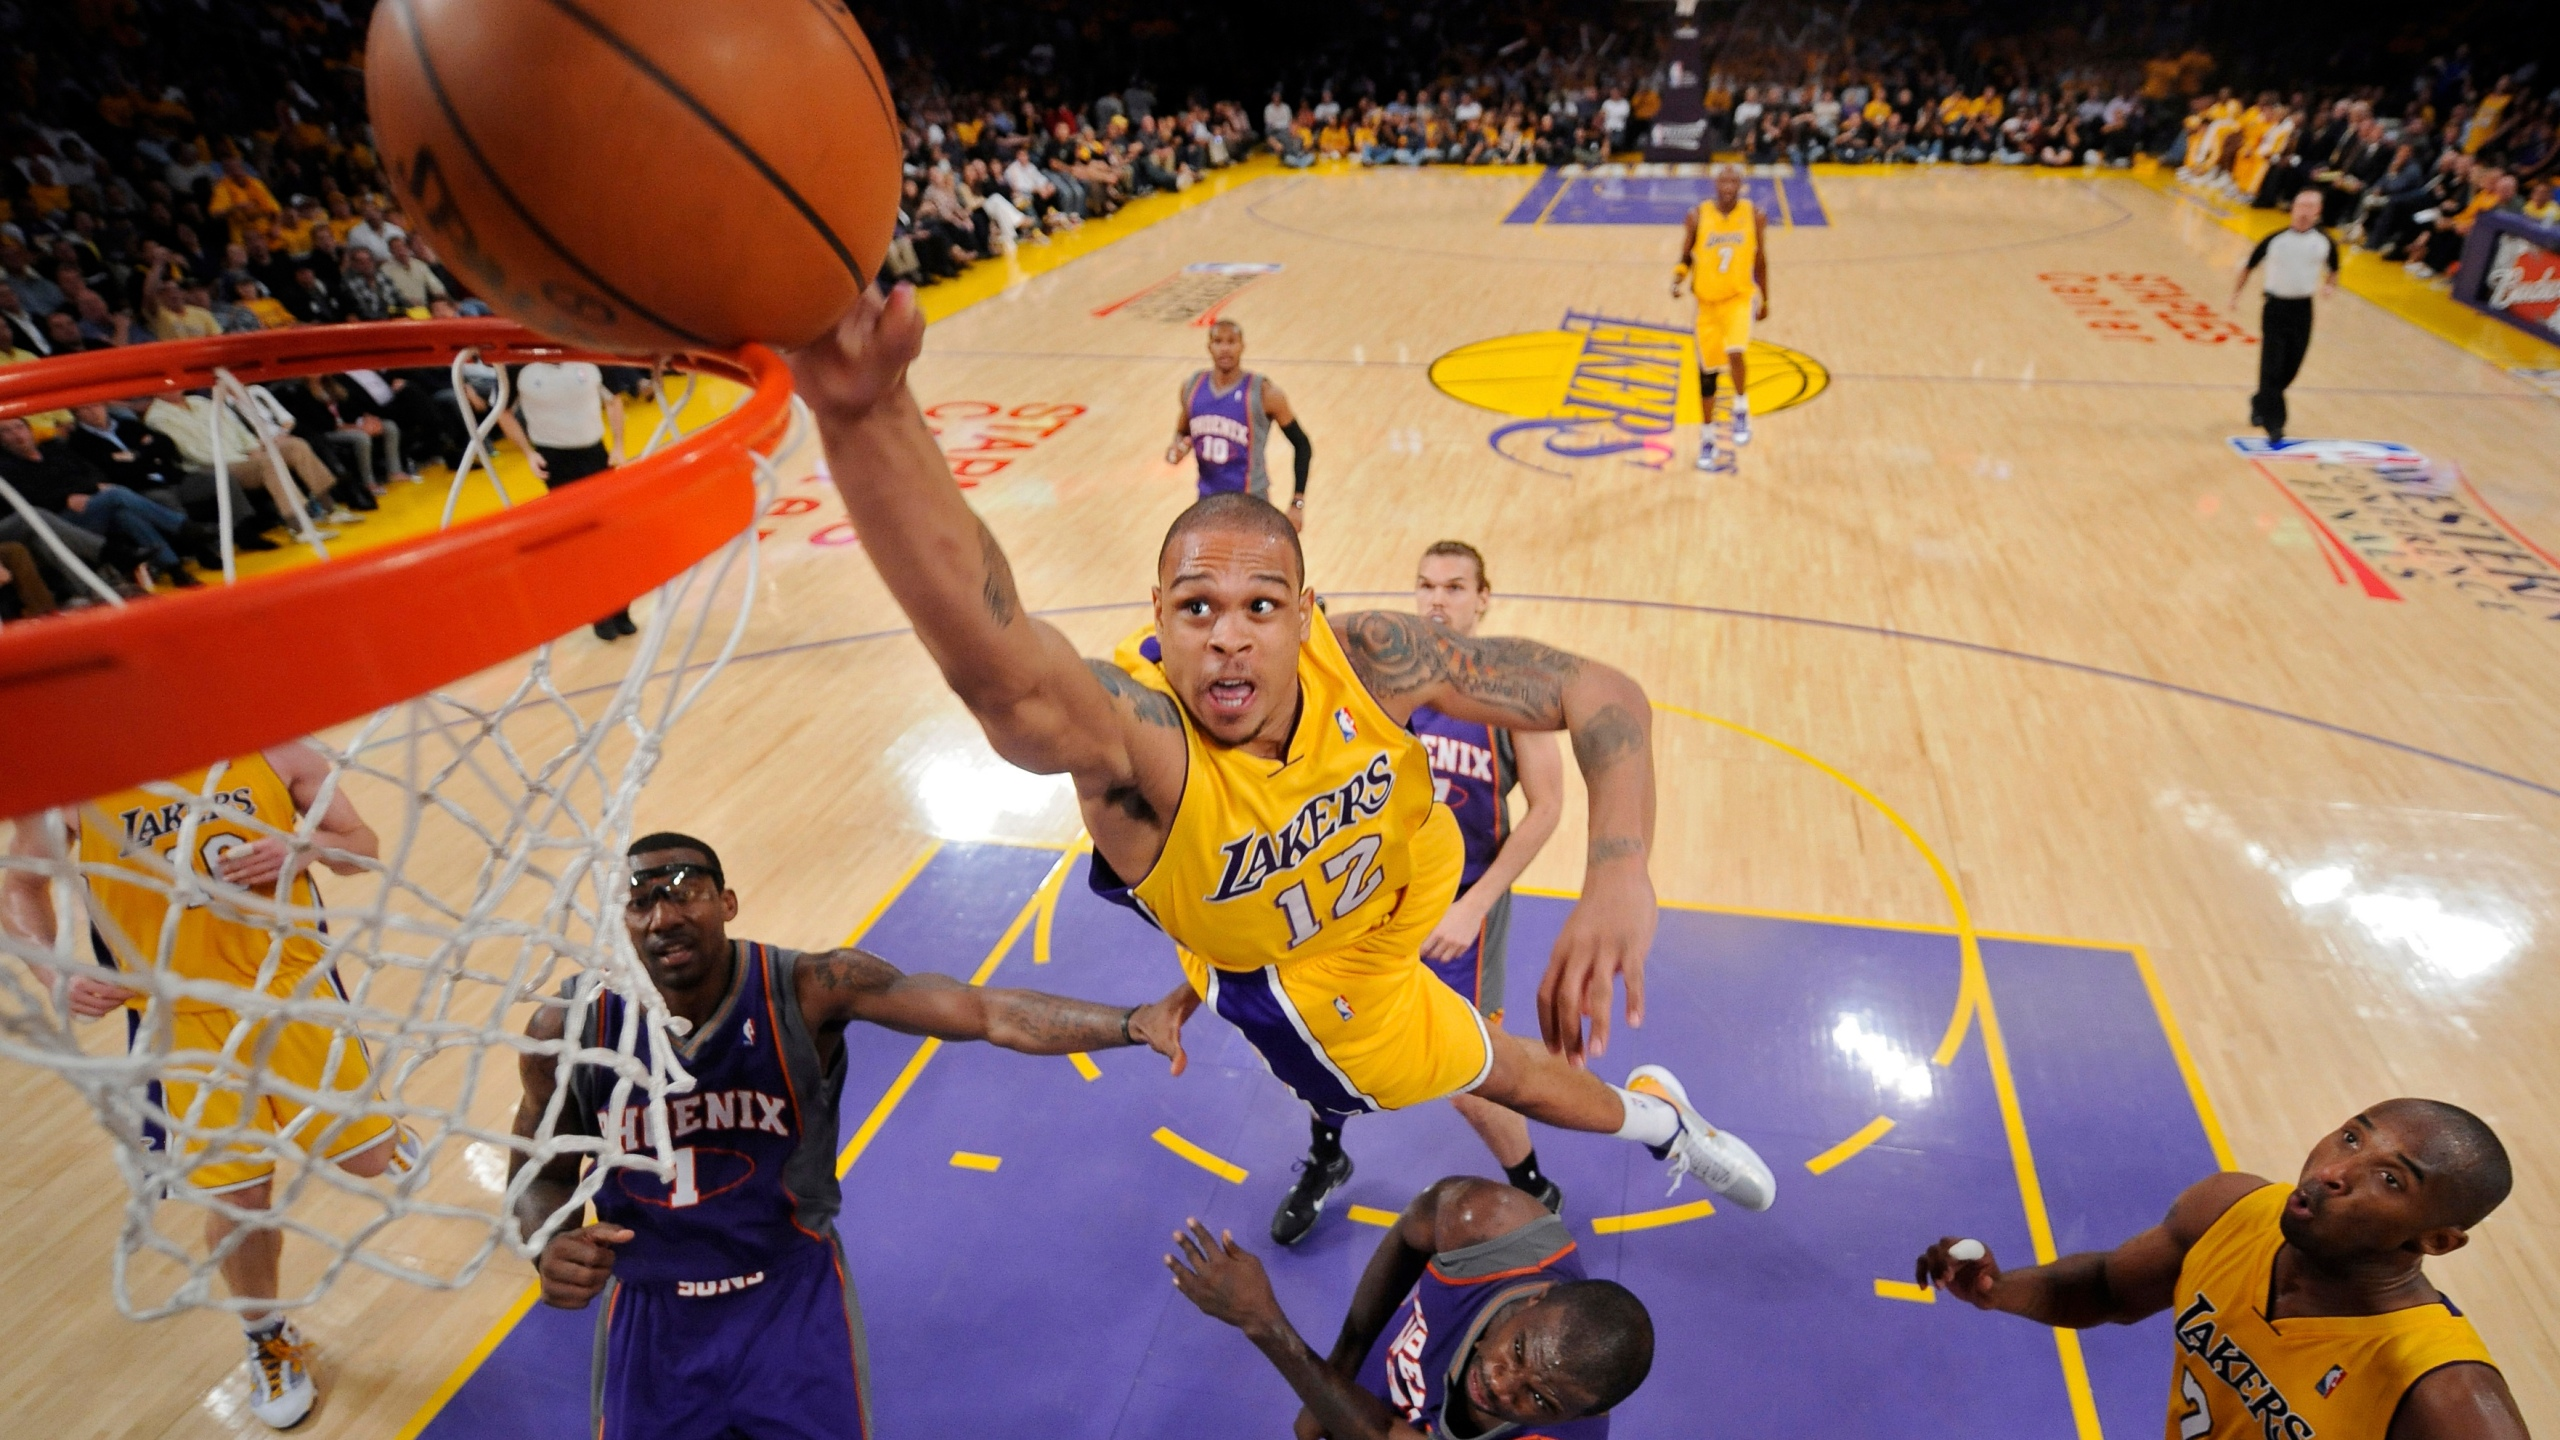 Shannon Brown, Amare Stoudemire, Jason Richardson, Kobe Bryant